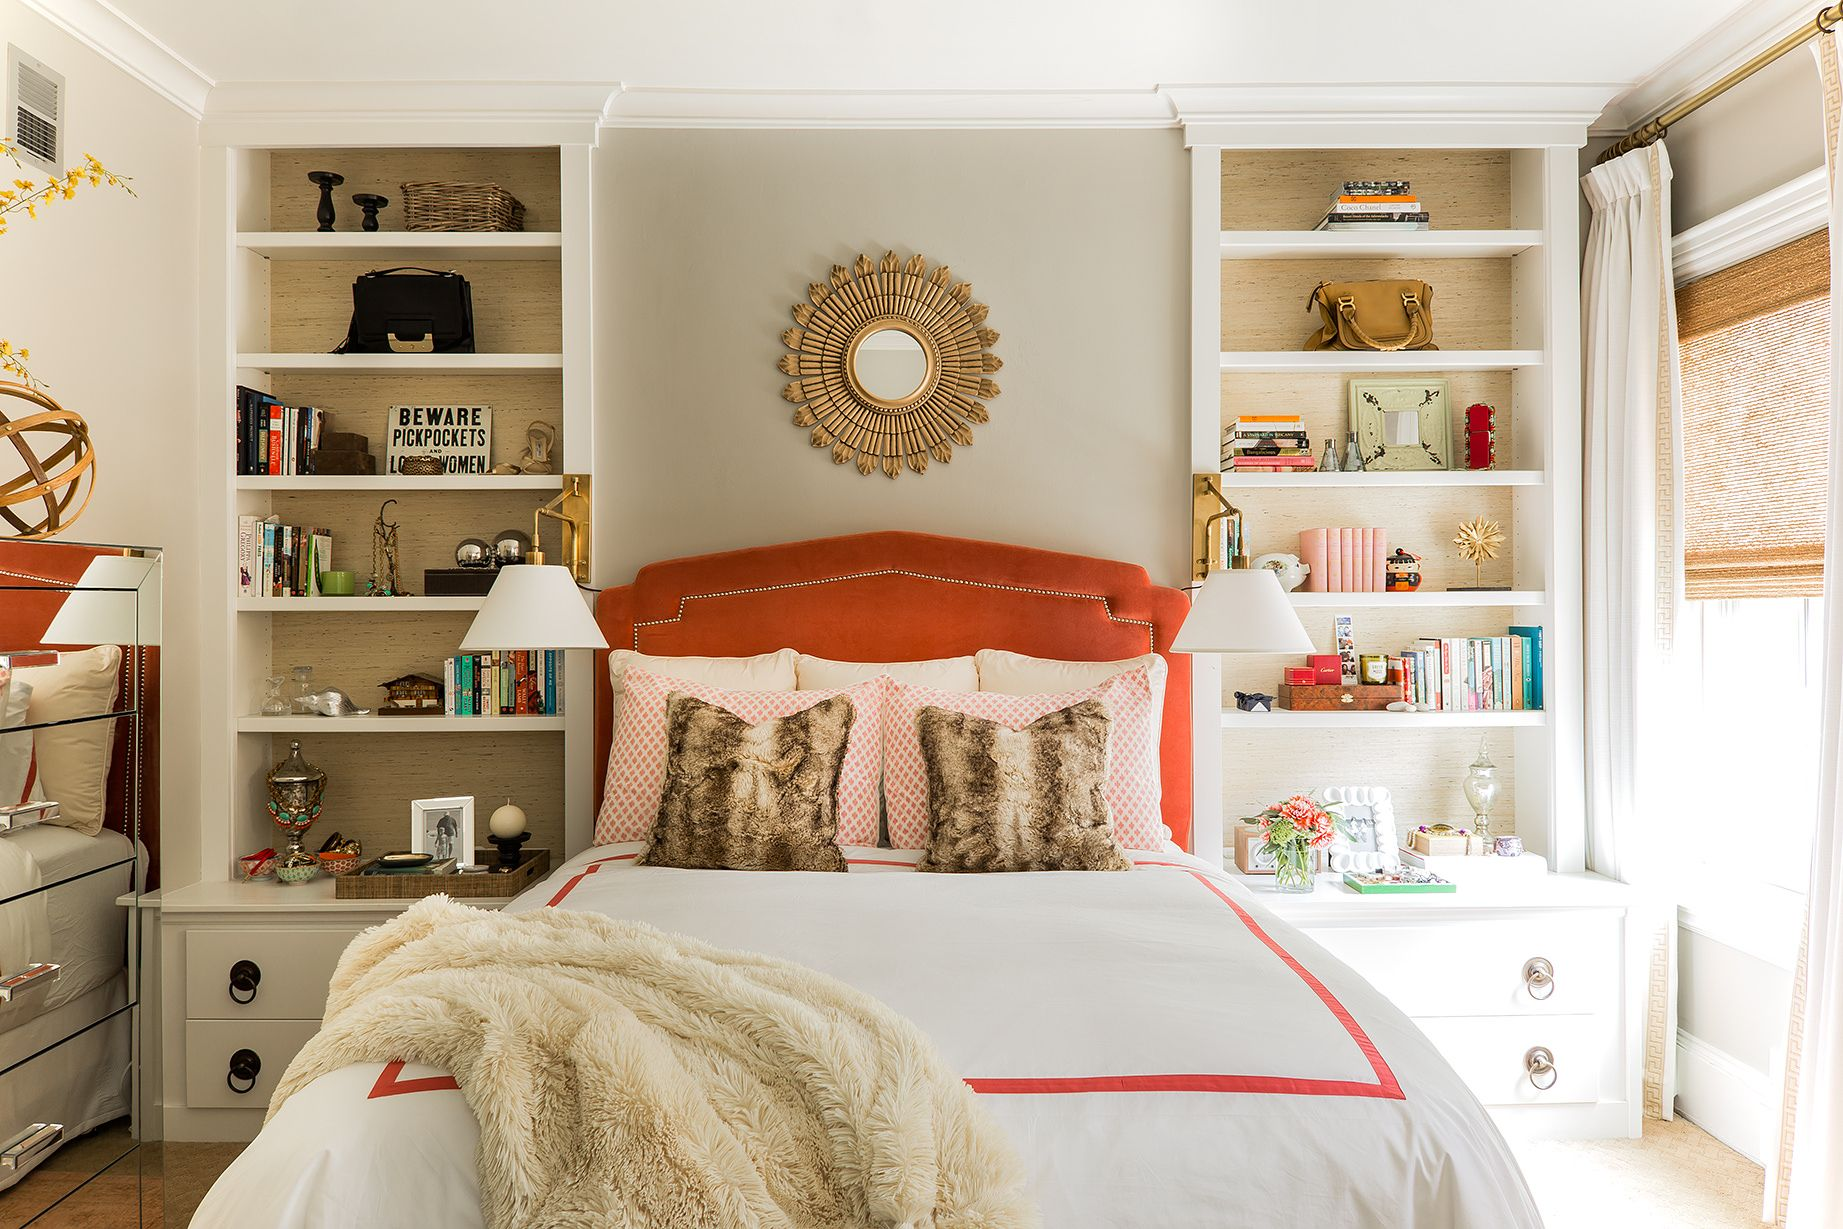 17 Small Bedroom Design Ideas - How to Decorate a Small ... on Small Room Bedroom Ideas  id=59491